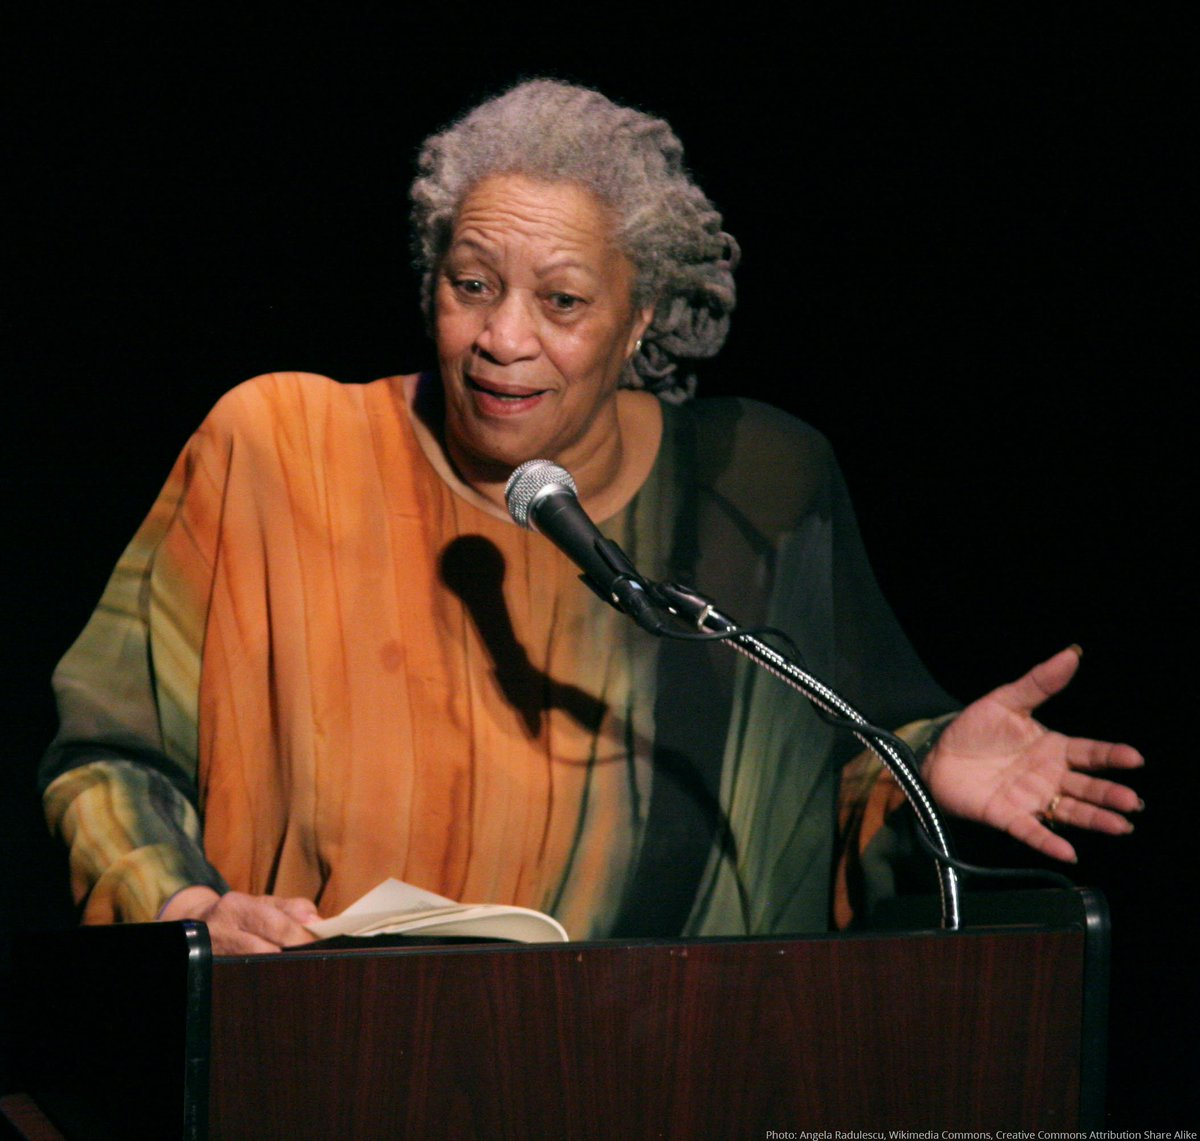 We mark International Day for the Abolition of Slavery by remembering Literature Laureate Toni Morrison who wrote about the horrors of slavery in several of her novels – including 'A Mercy' and 'Beloved' – and how its legacy, and irreparable harm, lives on. #AbolishSlavery